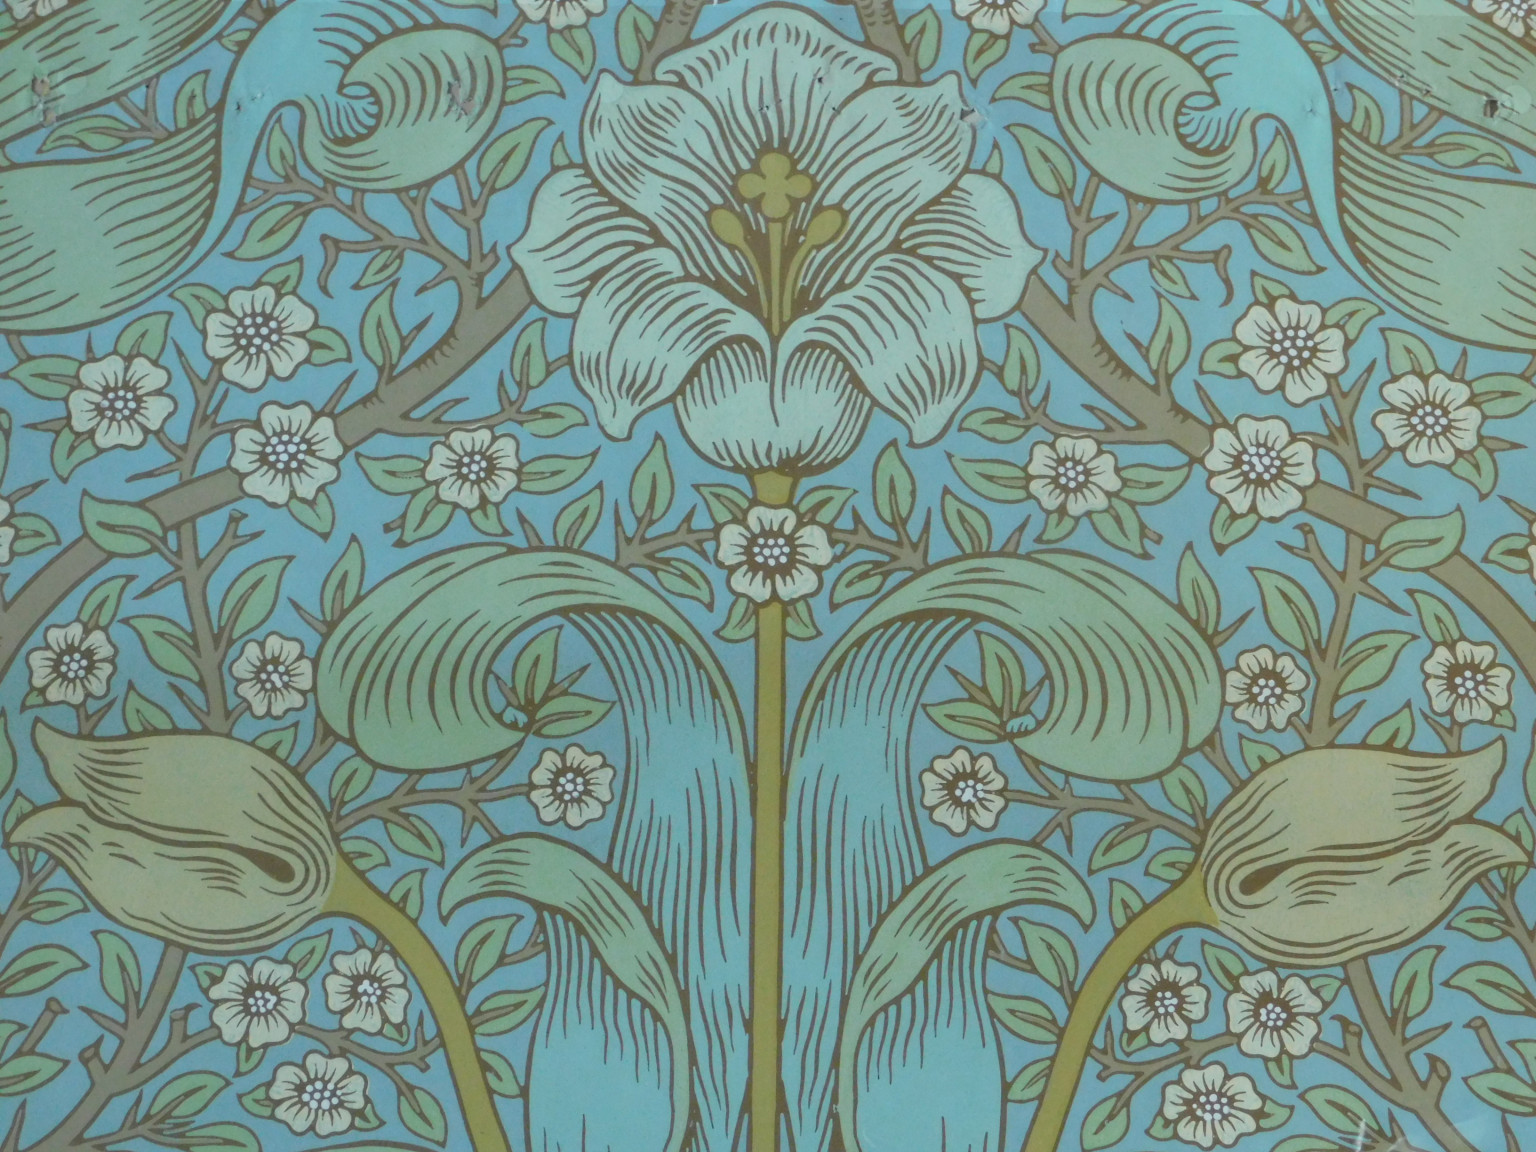 'Spring Thicket' wallpaper, Morris & Co.